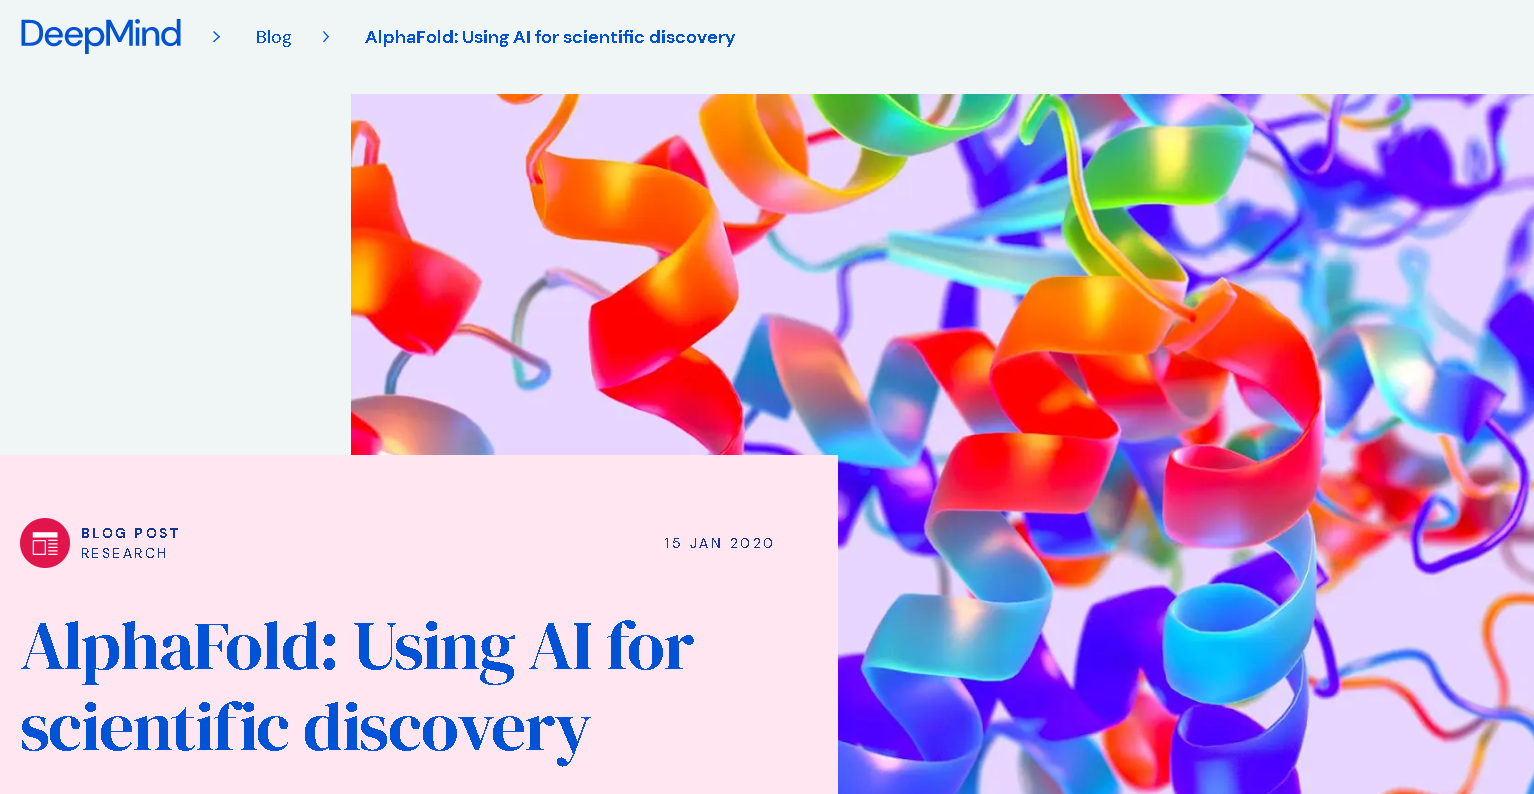 AlphaFold AI is being used for Scientific Discovery